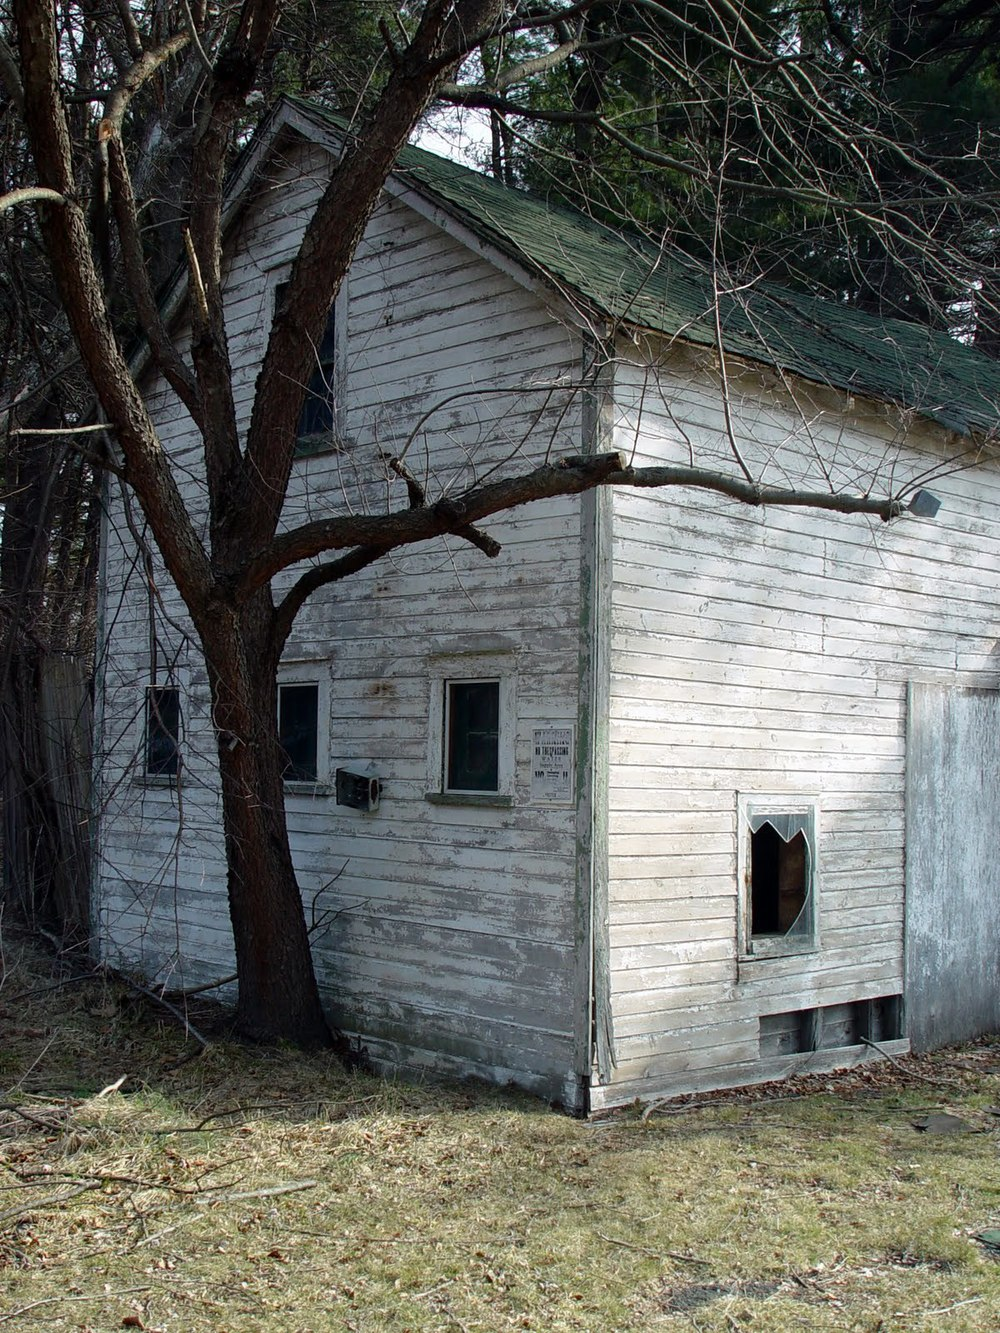 Back in 2010 - Remnants of a long-forgotten house. Perhaps once belonging to Francis A. McEnerney (see plaque below).